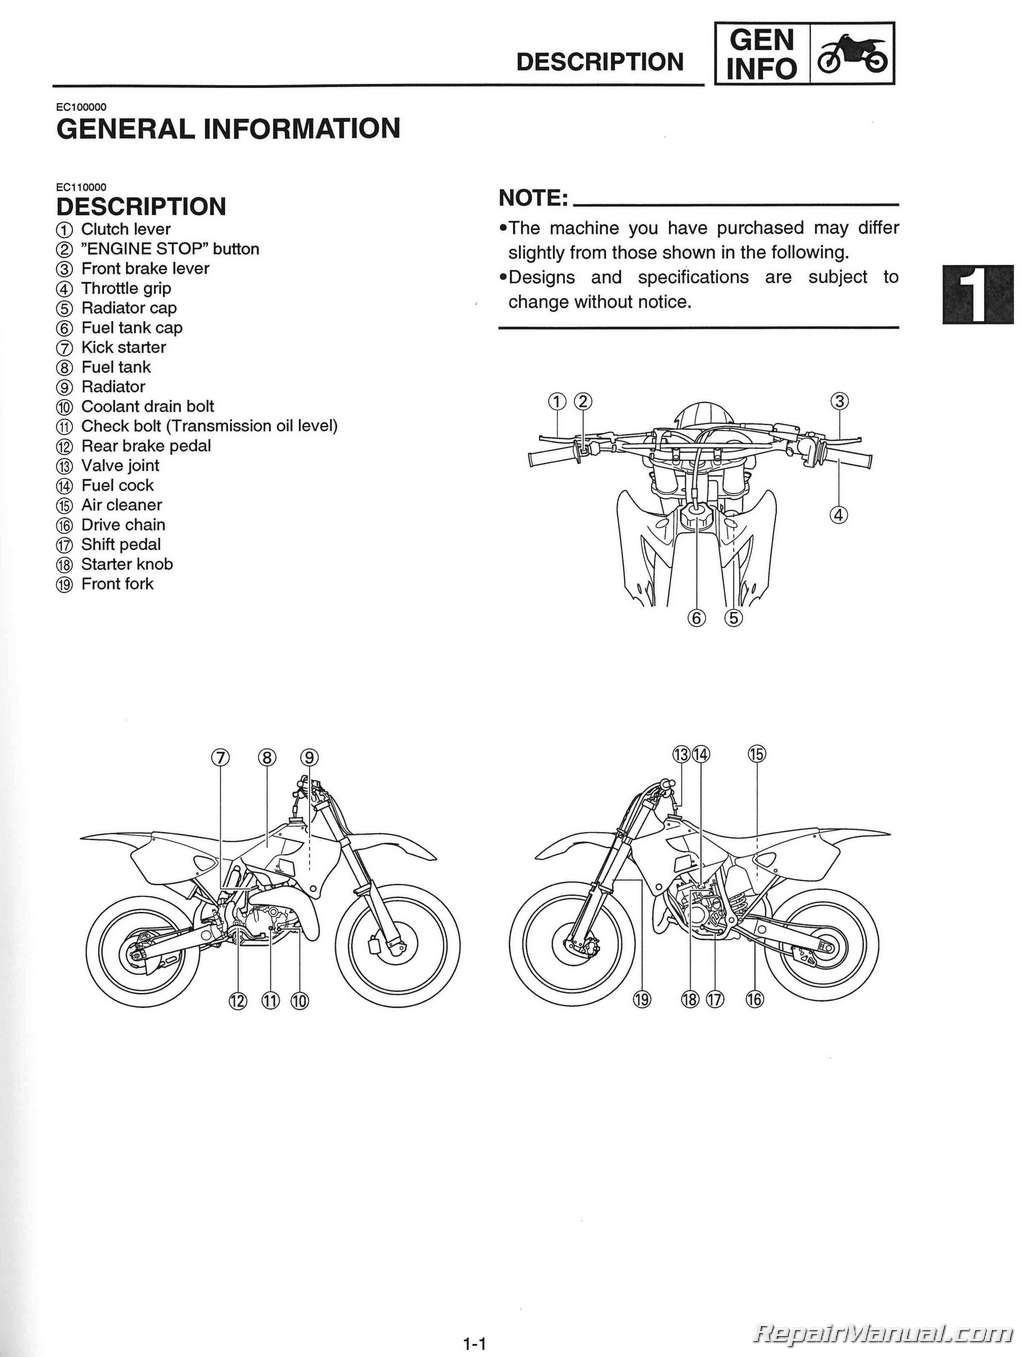 Yz 125 Engine Diagram Wiring Schemes Yamaha R1 2000 2001 Yz125 Motorcycle Owners Service Manual Rh Repairmanual Com 2003